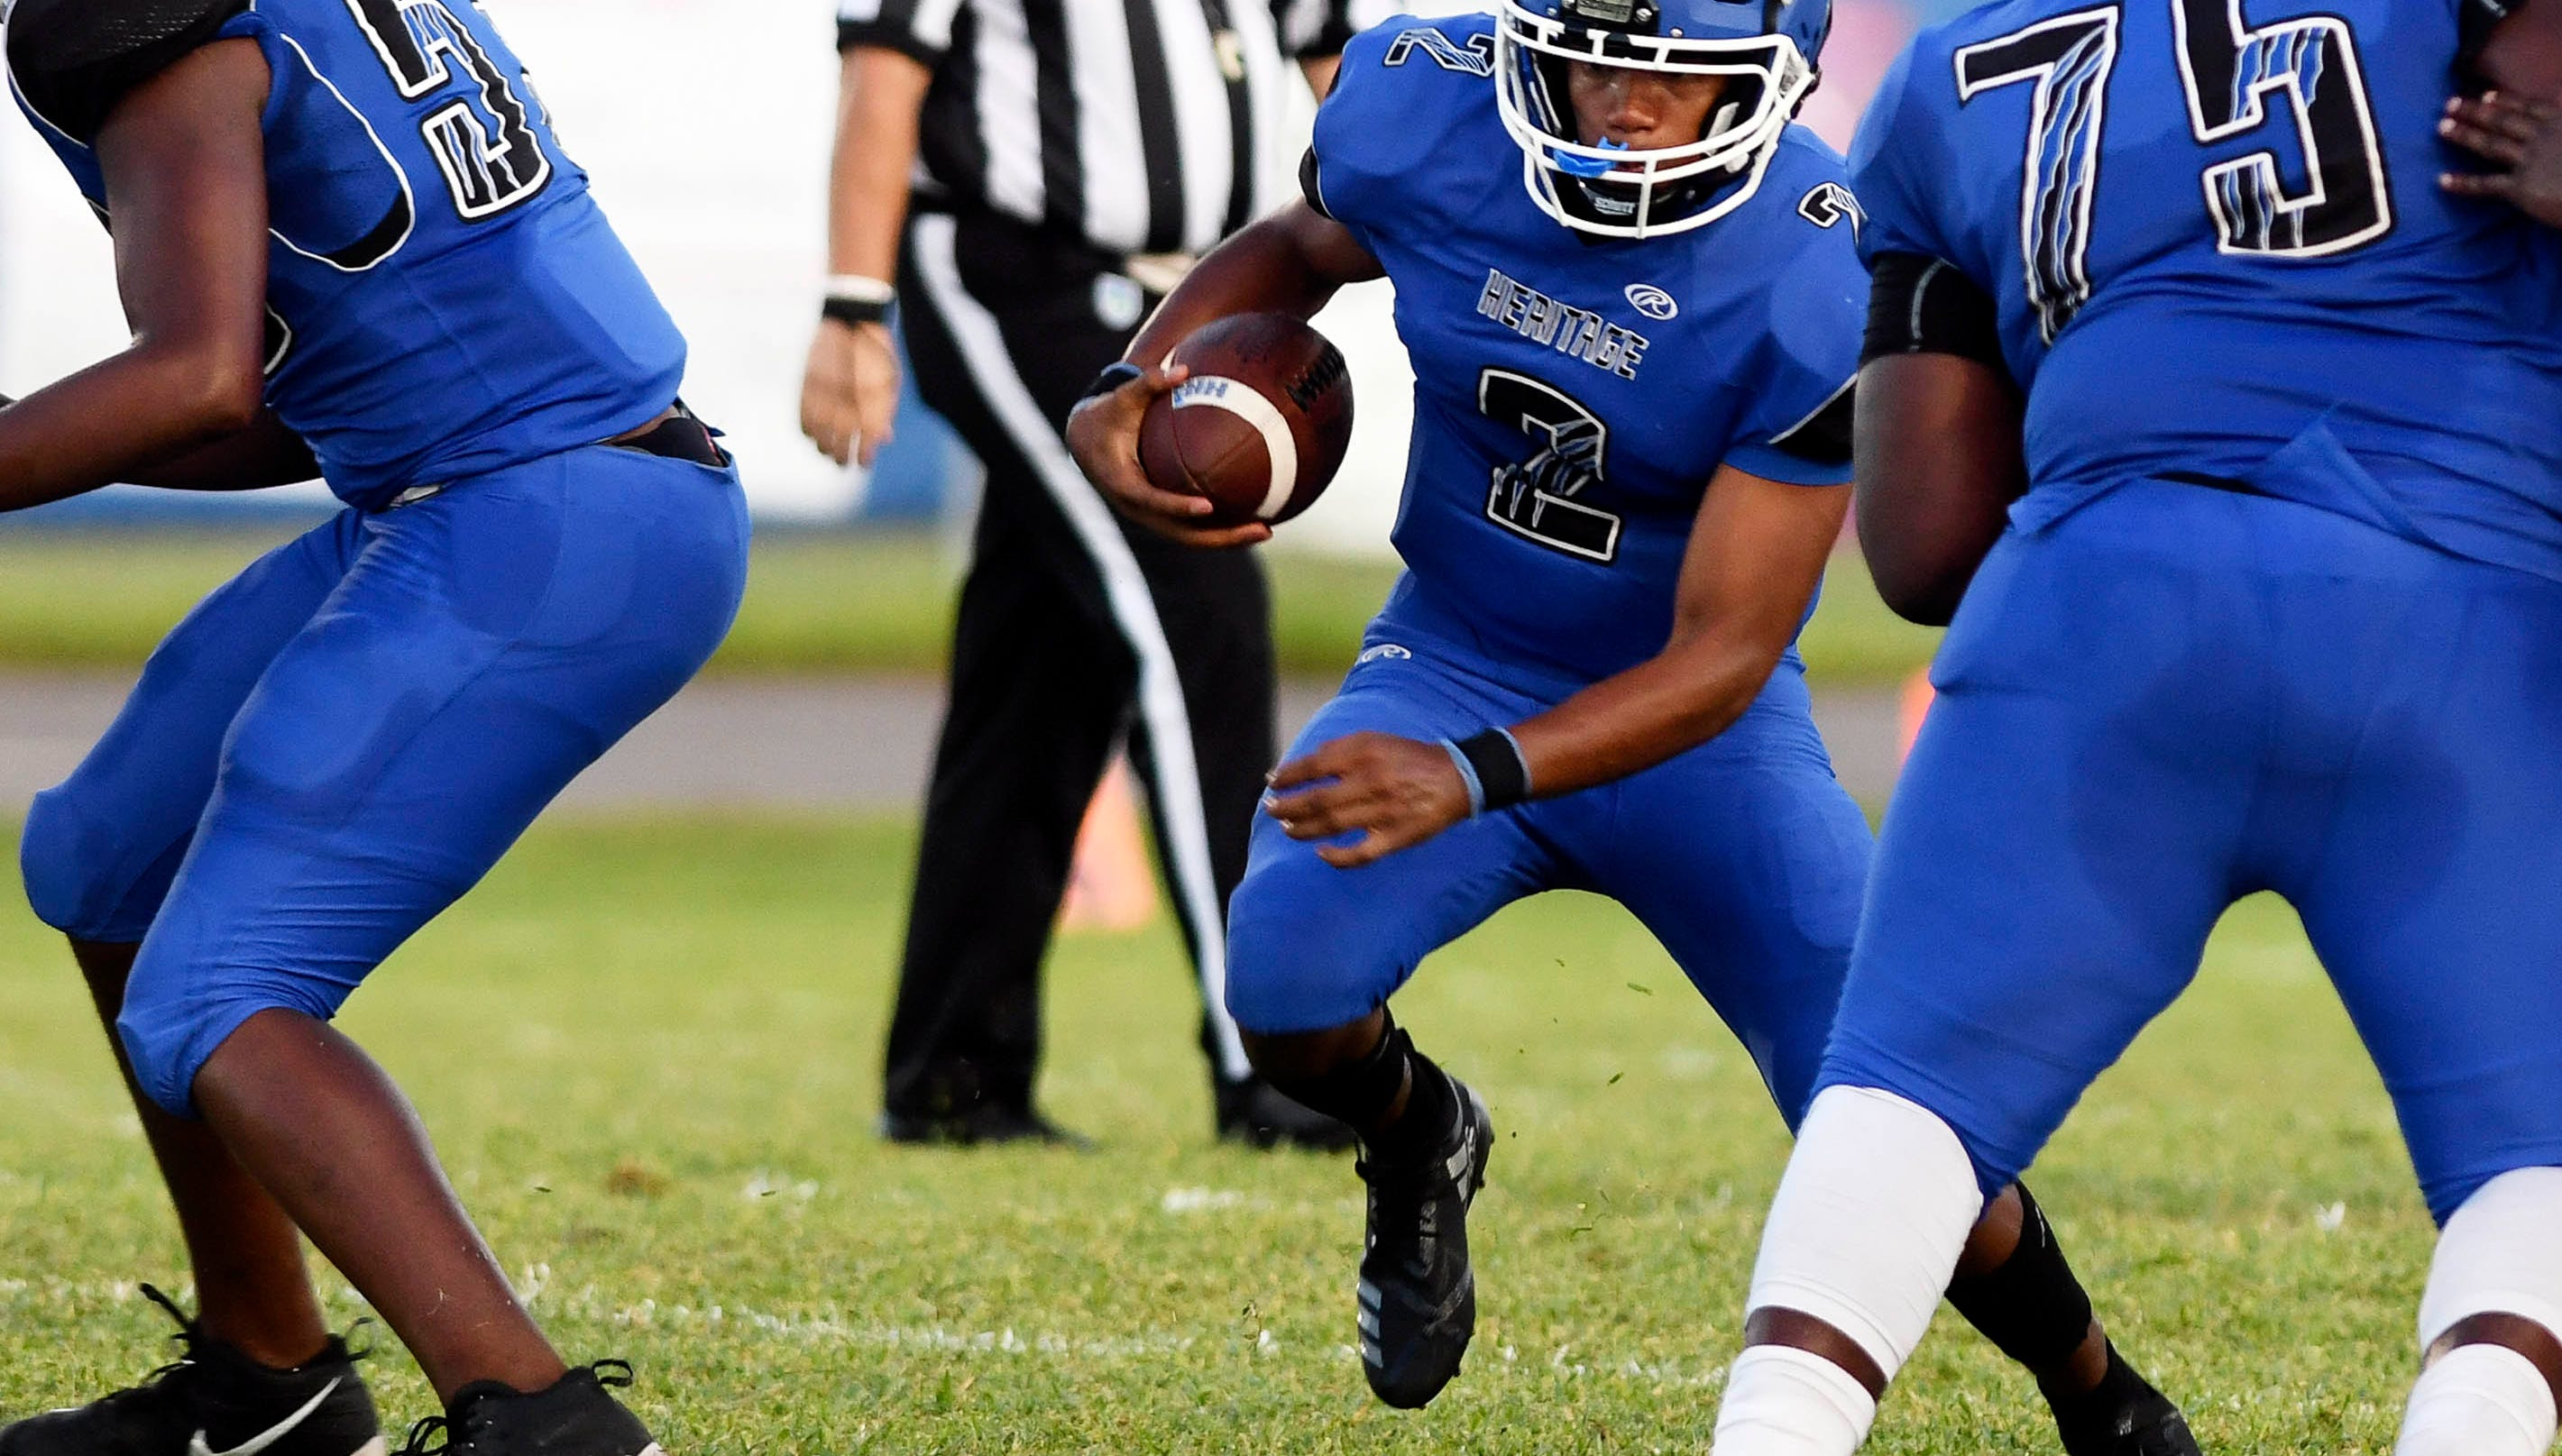 Brevard Teams Up Again In Fhsaa Football Playoffs Power Points Standings